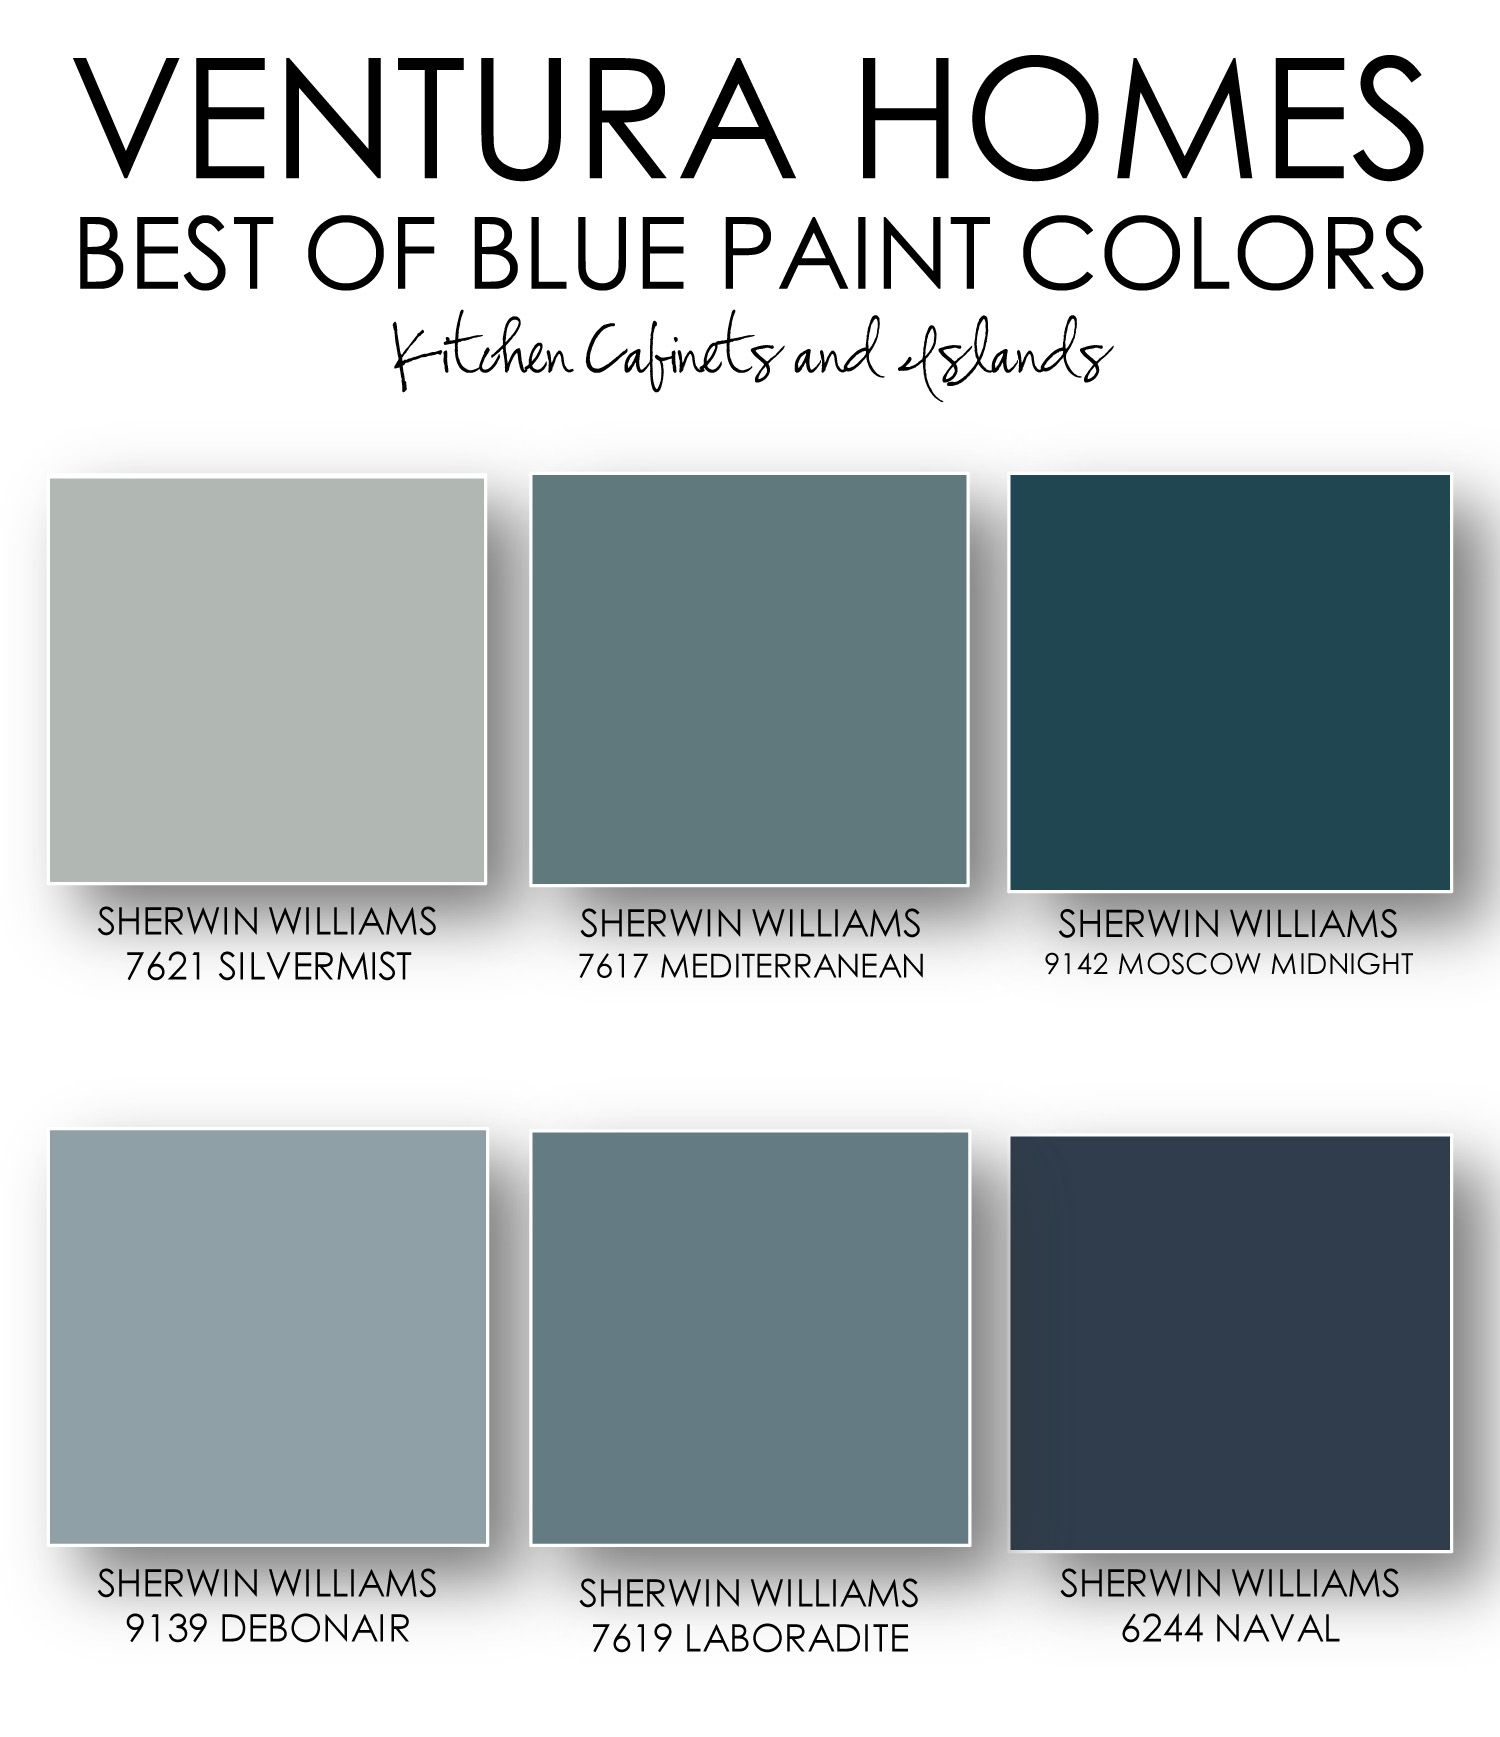 On The Blog Ventura Homes Best Of Blue Paint Colors Sherwin Williams Paint Colors Shades O Blue Paint Colors Best Blue Paint Colors Blue Gray Paint Colors